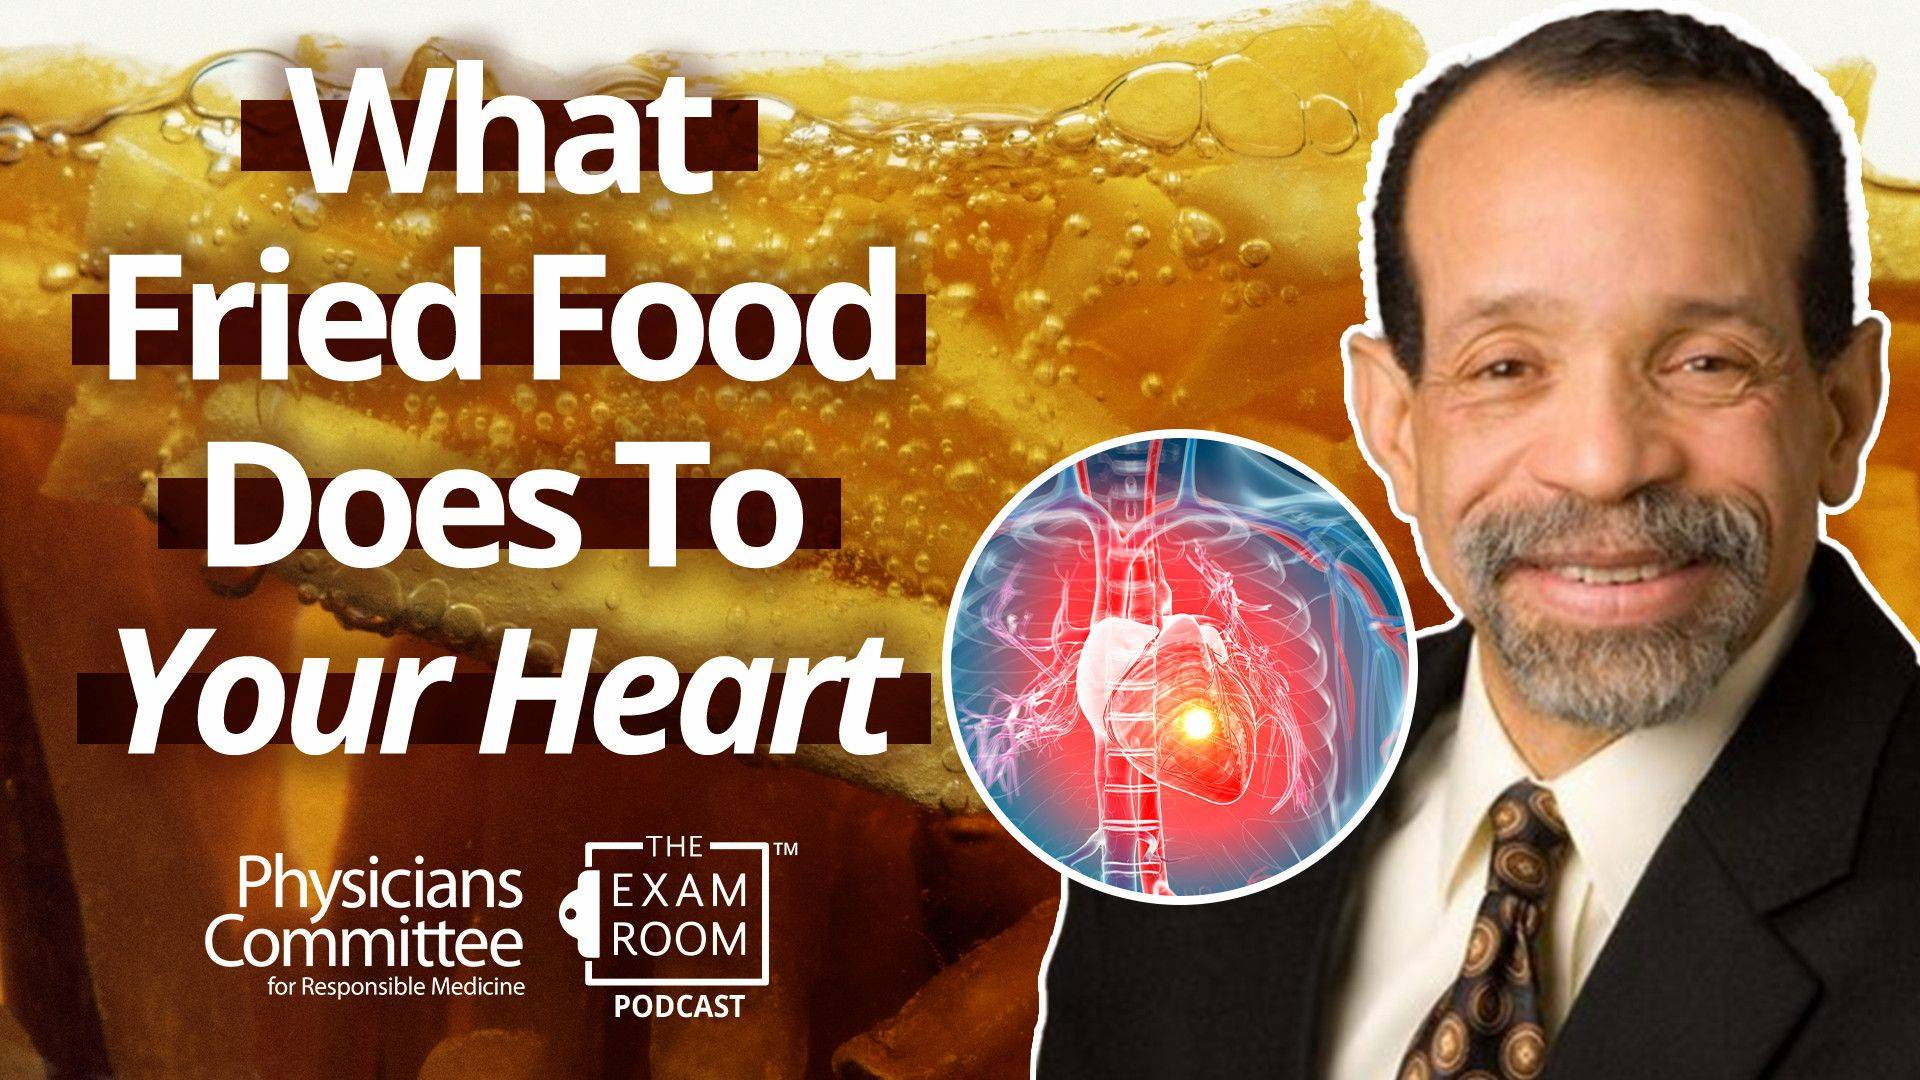 This Is What Fried Food Actually Does To Your Heart